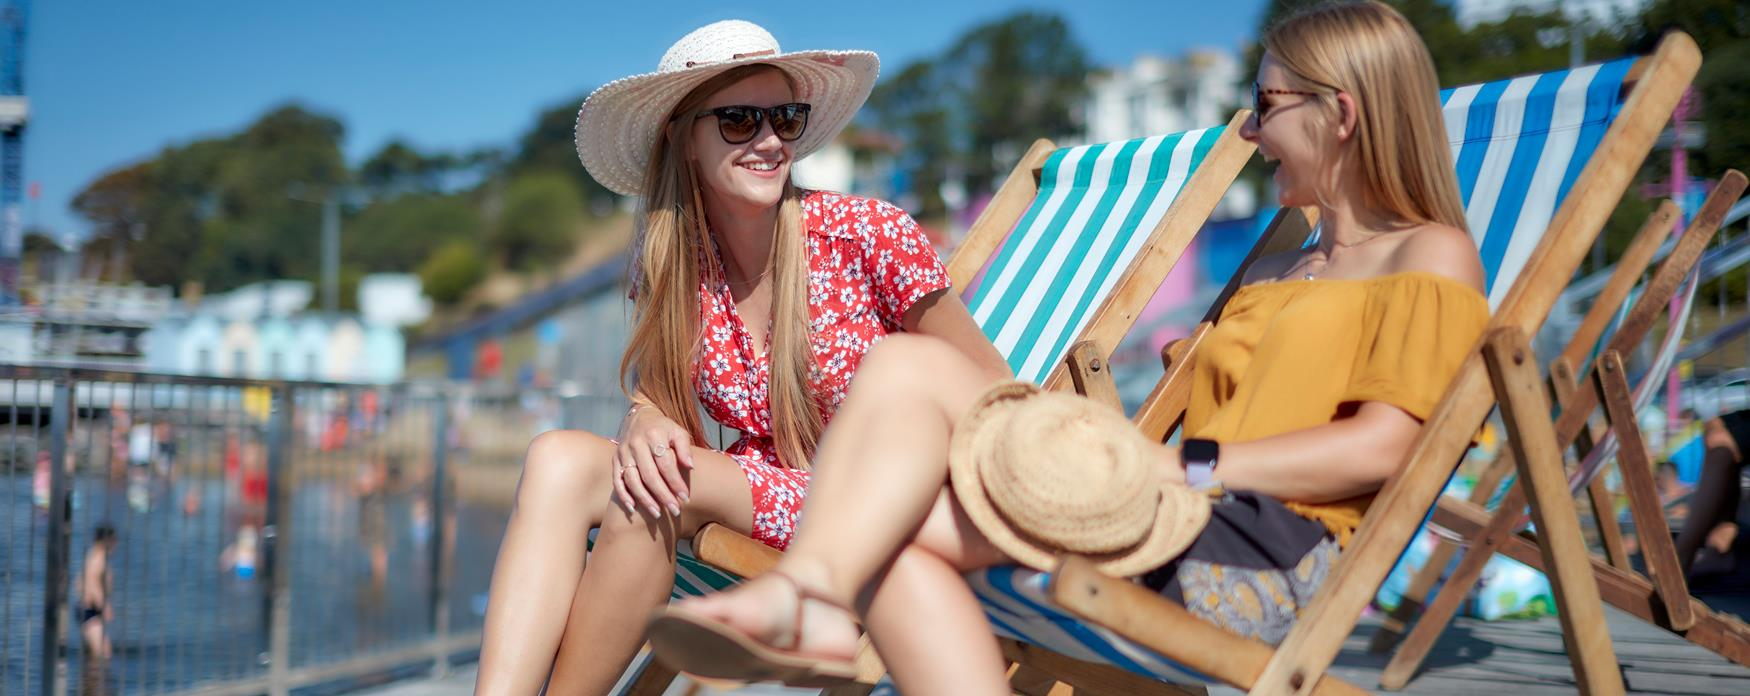 Two women smiling sitting in deckchairs